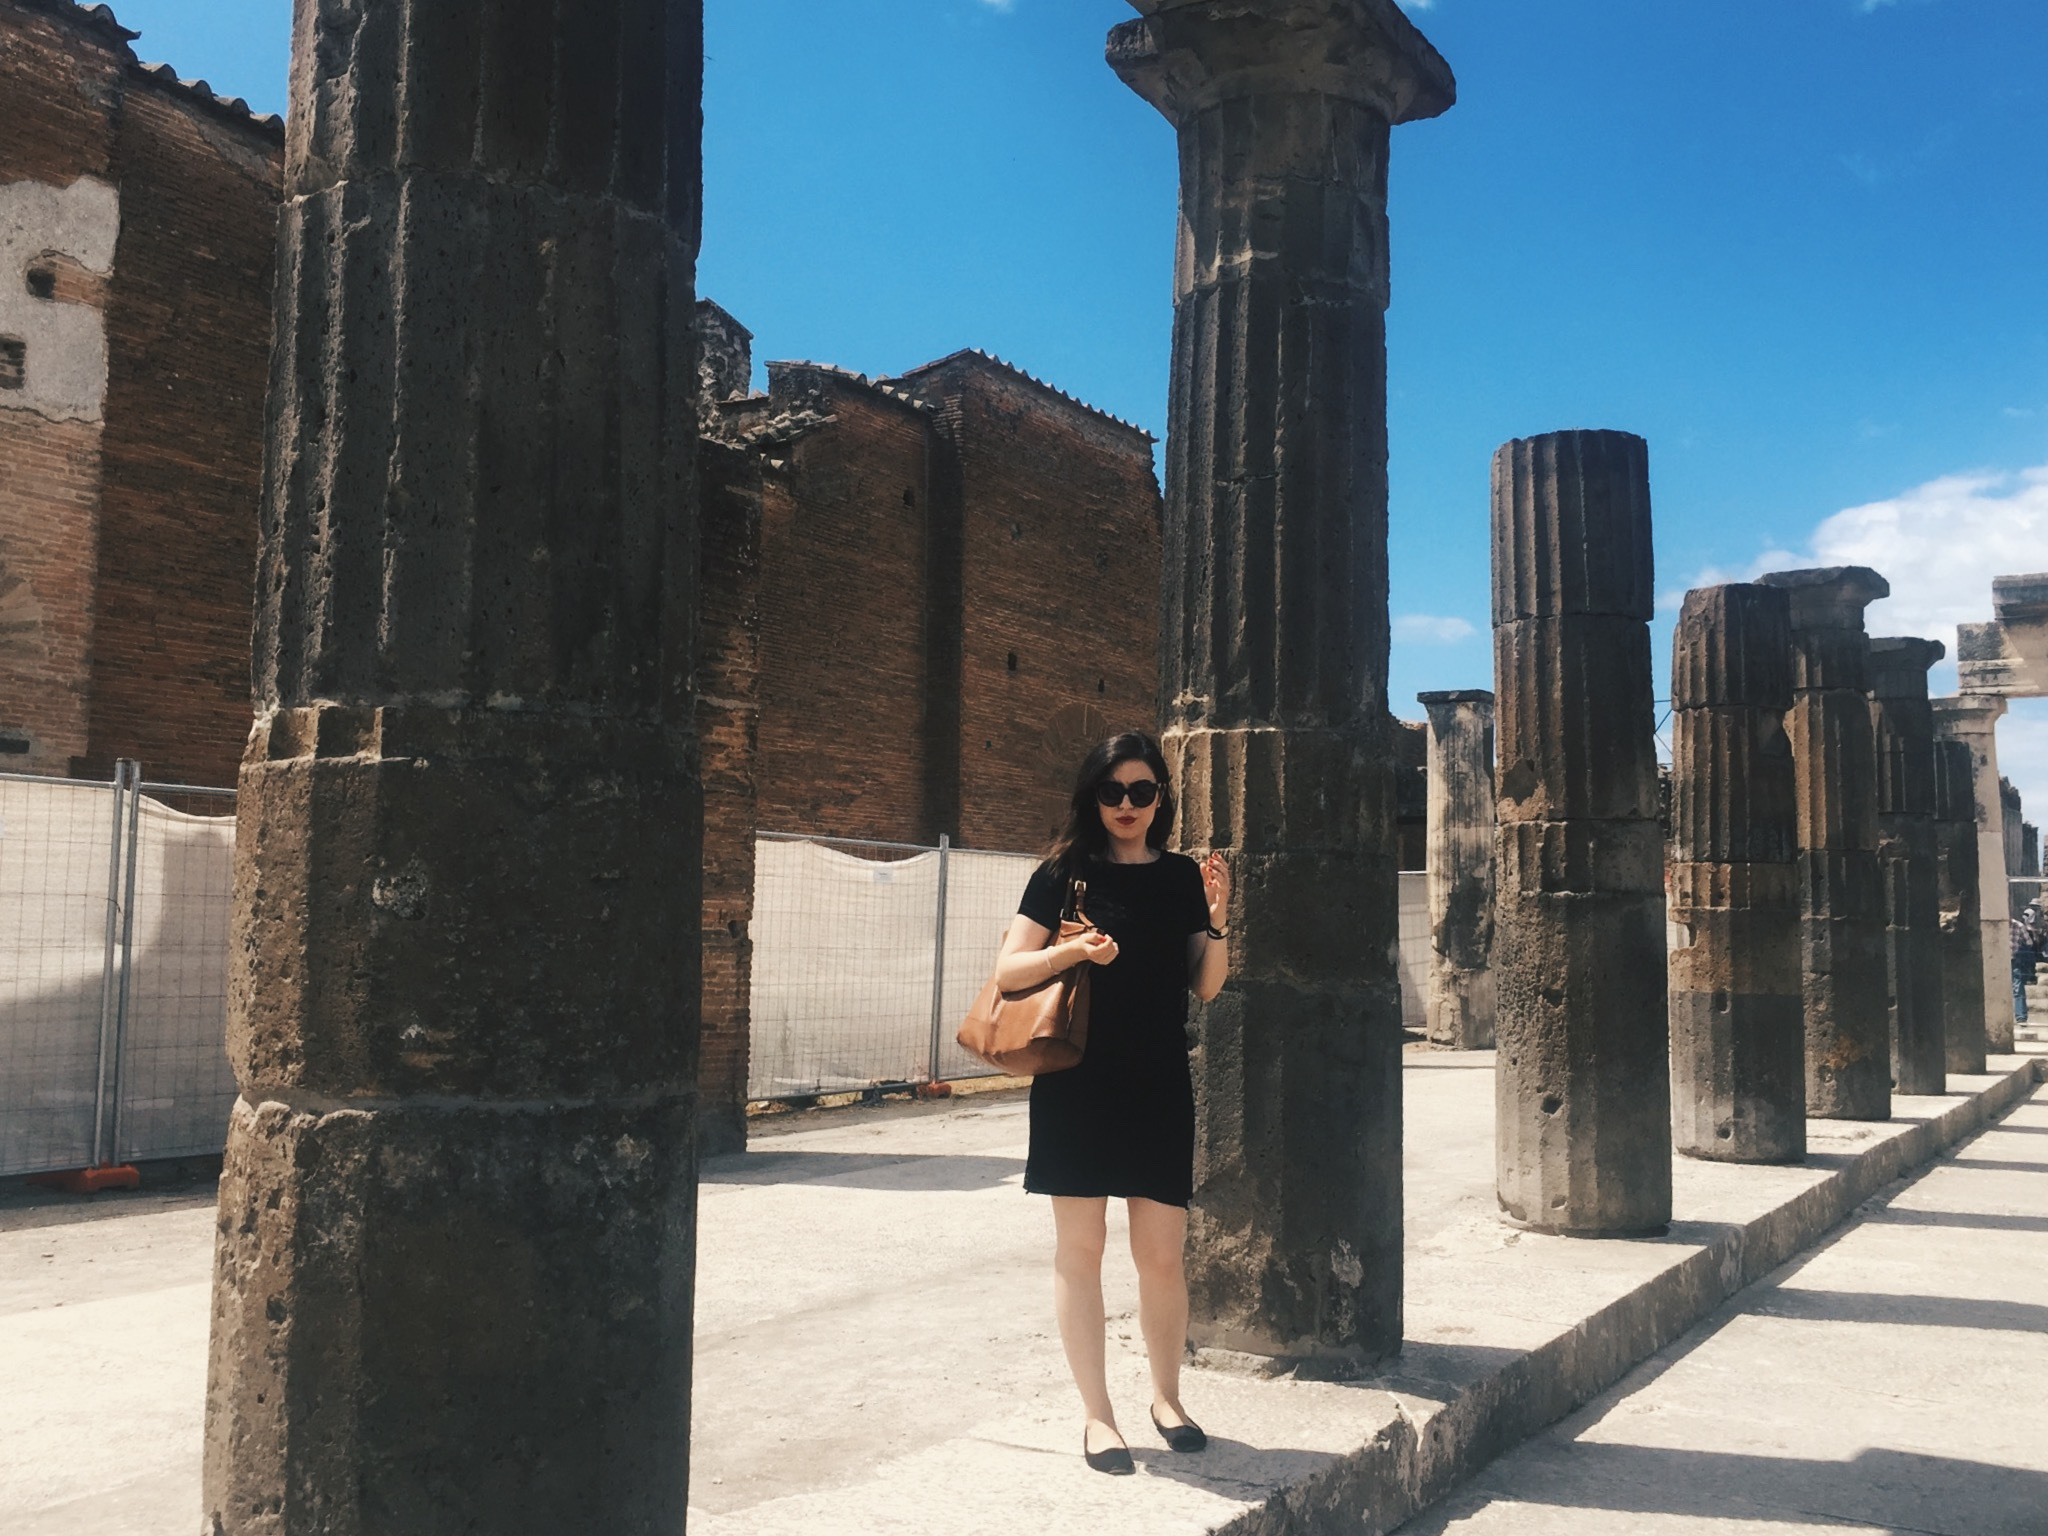 The author in Pompeii in 2017, before the Doric Columns.